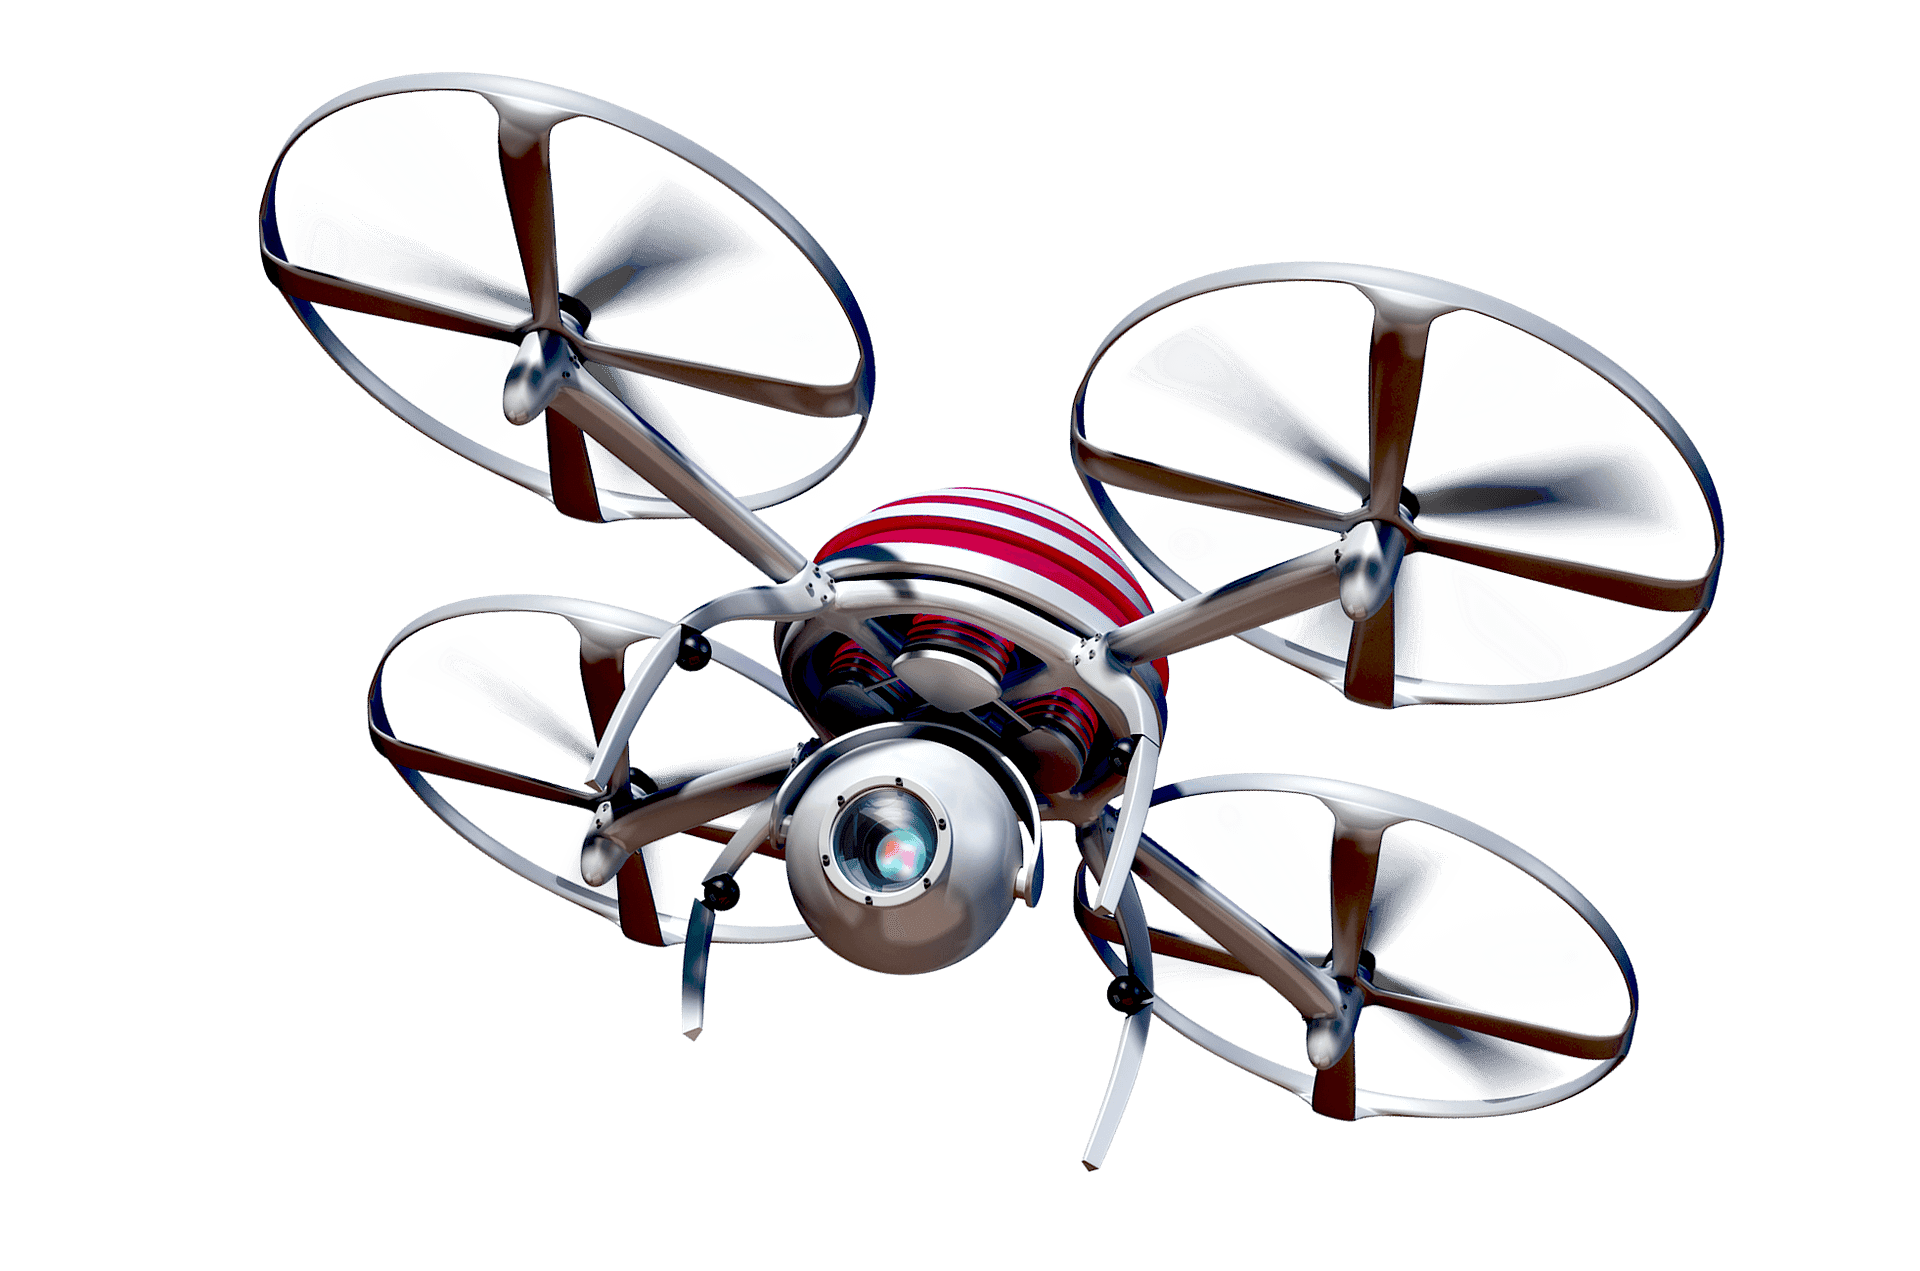 content/pt-br/images/repository/isc/2020/a-spy-drone-with-large-camera-lens.png